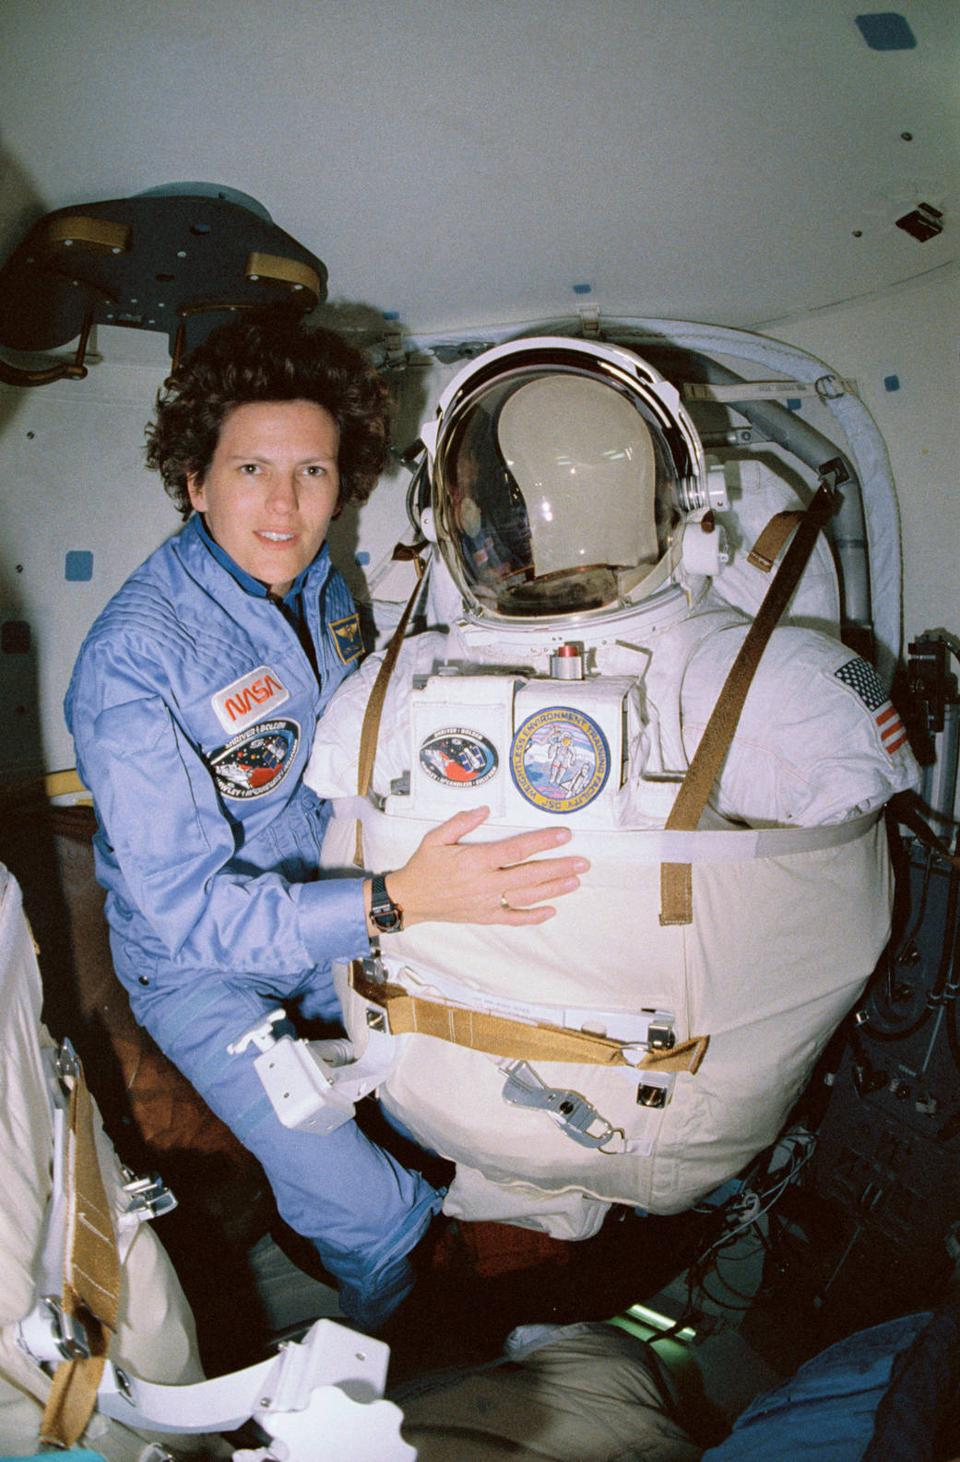 Kathryn Sullivan posed for this photograph as she prepared for a potential third spacewalk aboard STS-31, during which the Discovery crew deployed the Hubble Space Telescope.